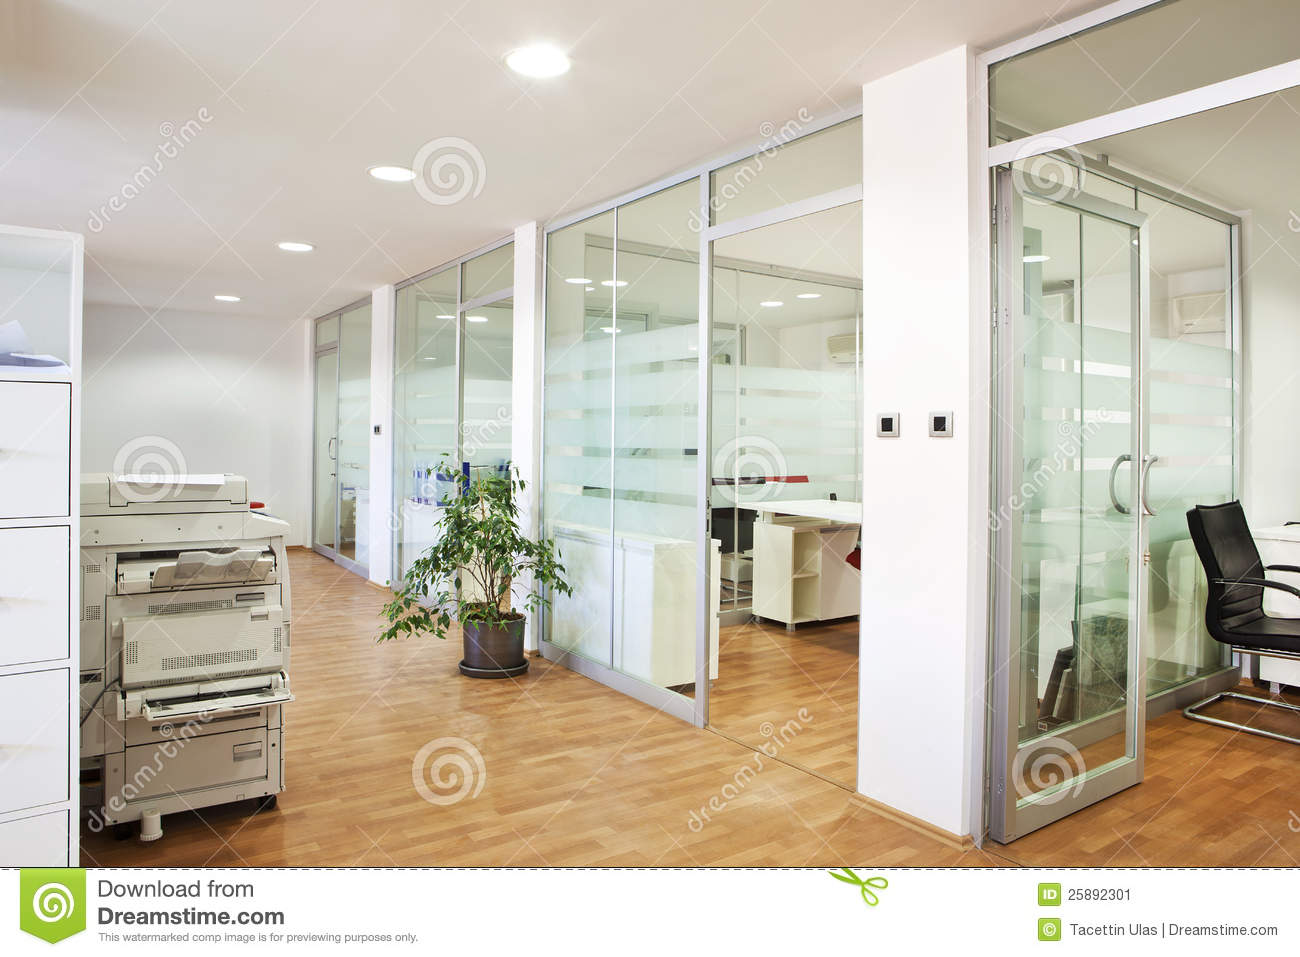 Modern Office Interior Stock Image - Image: 25892301